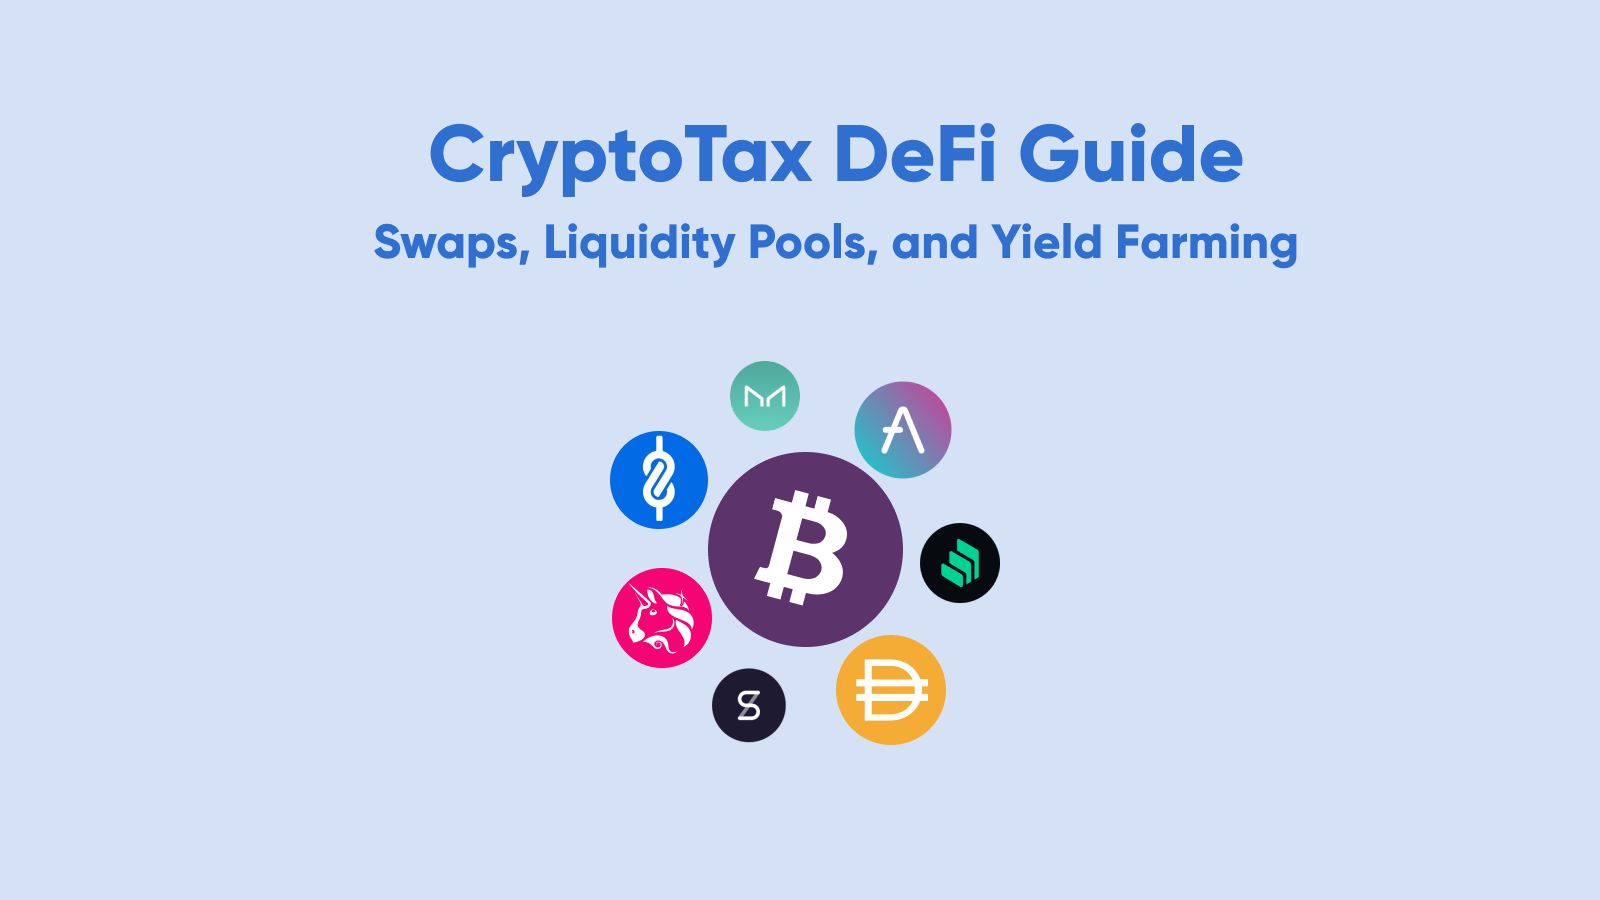 DeFi Yield Farming Explained: Projects, Risks, Crypto - NOWPayments